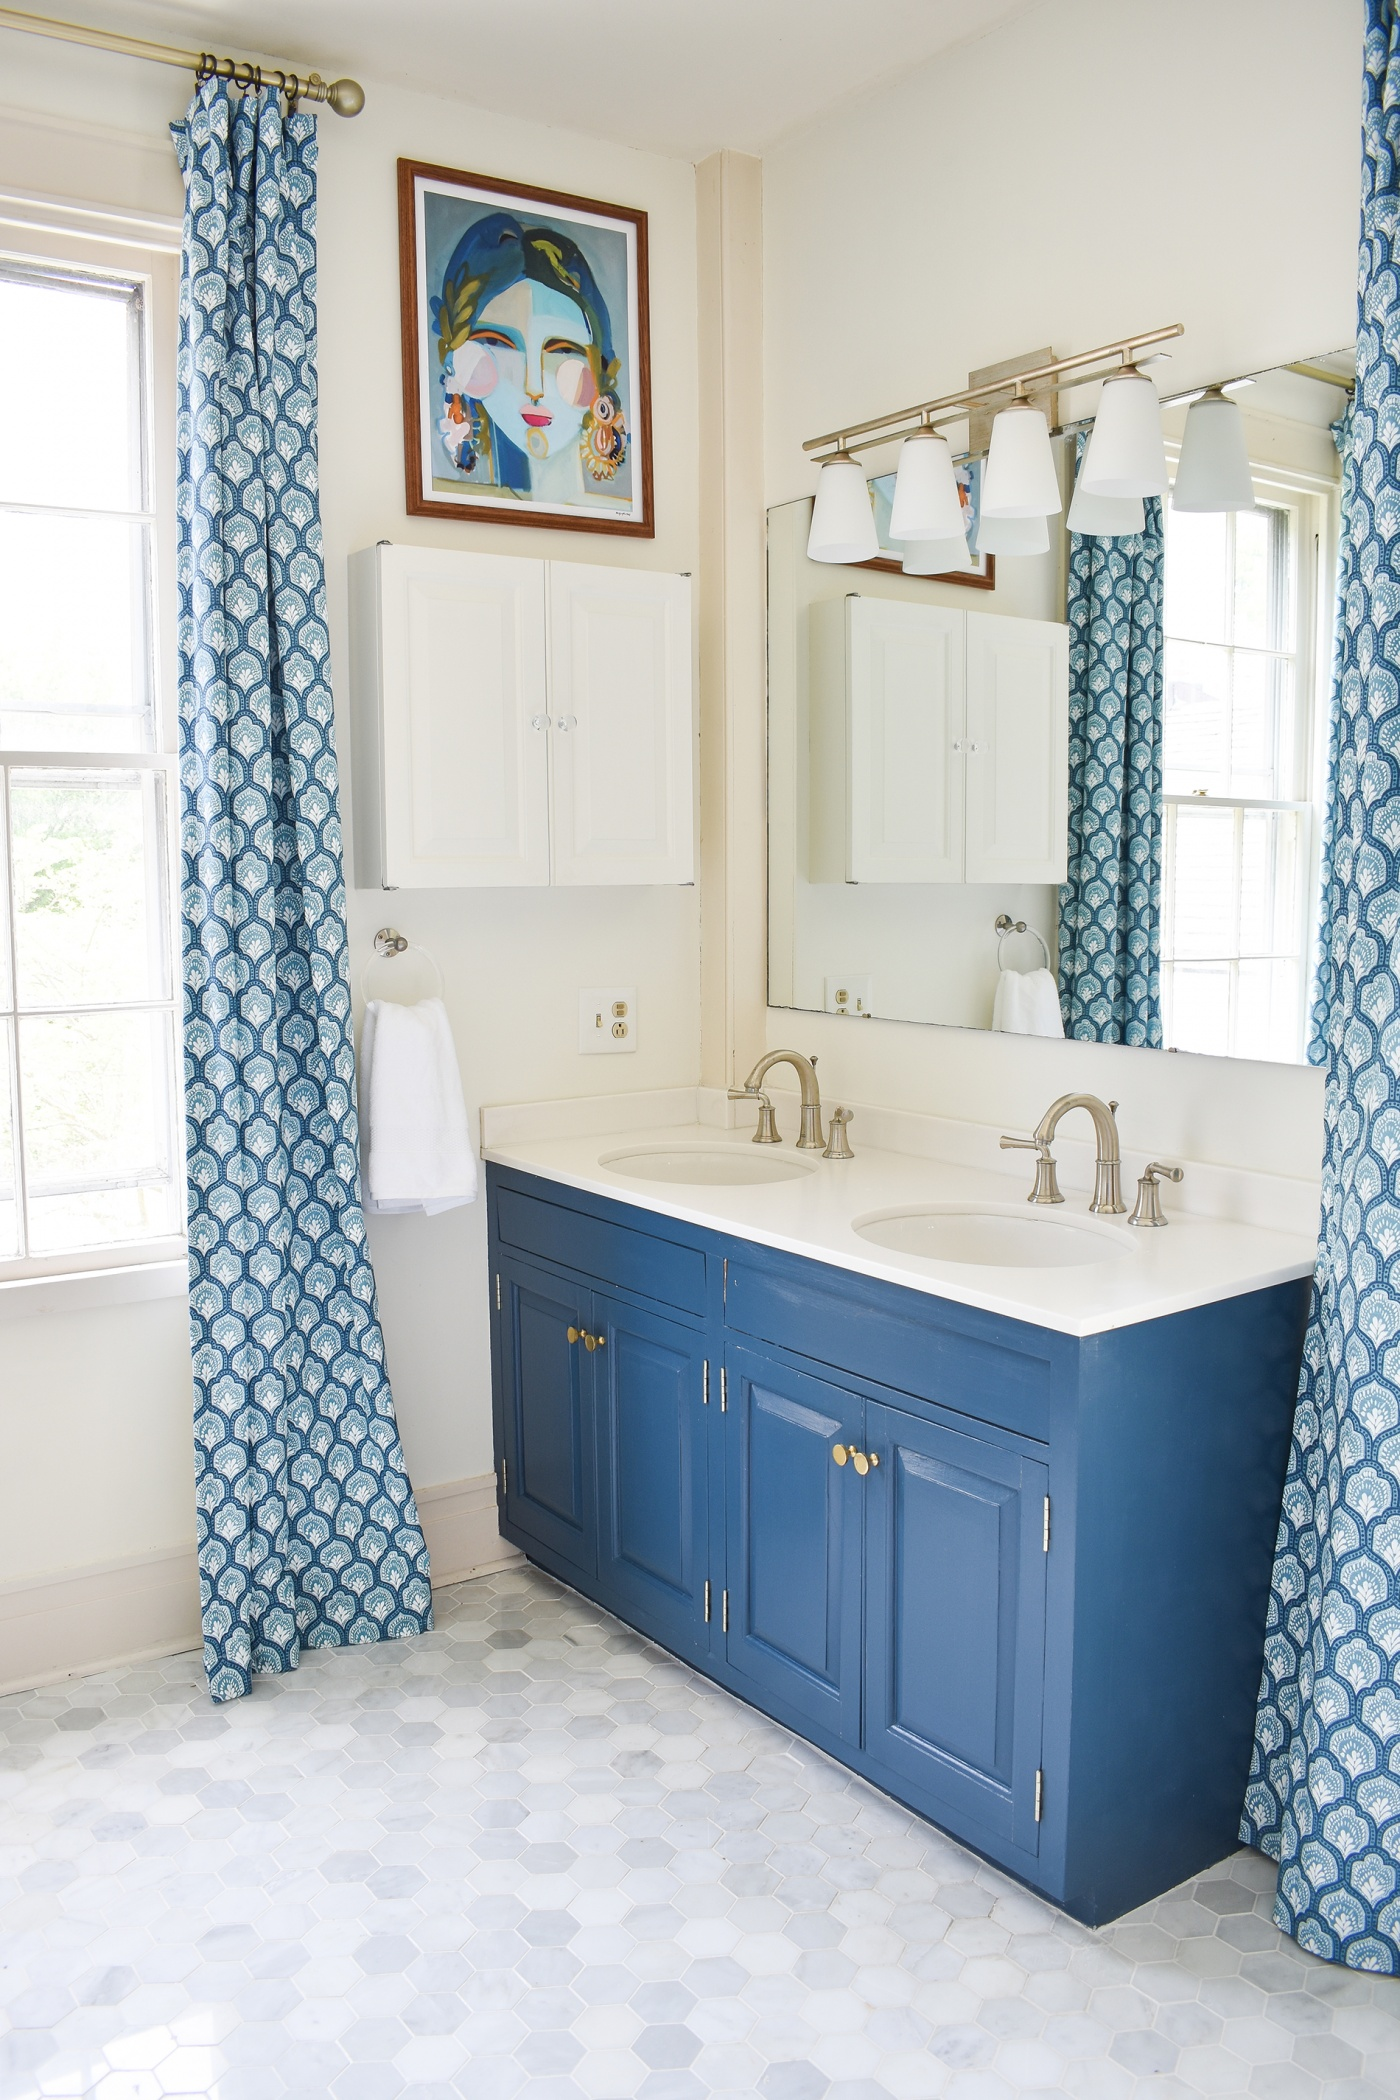 Image of Charlotte (Martin) Smith's bathroom